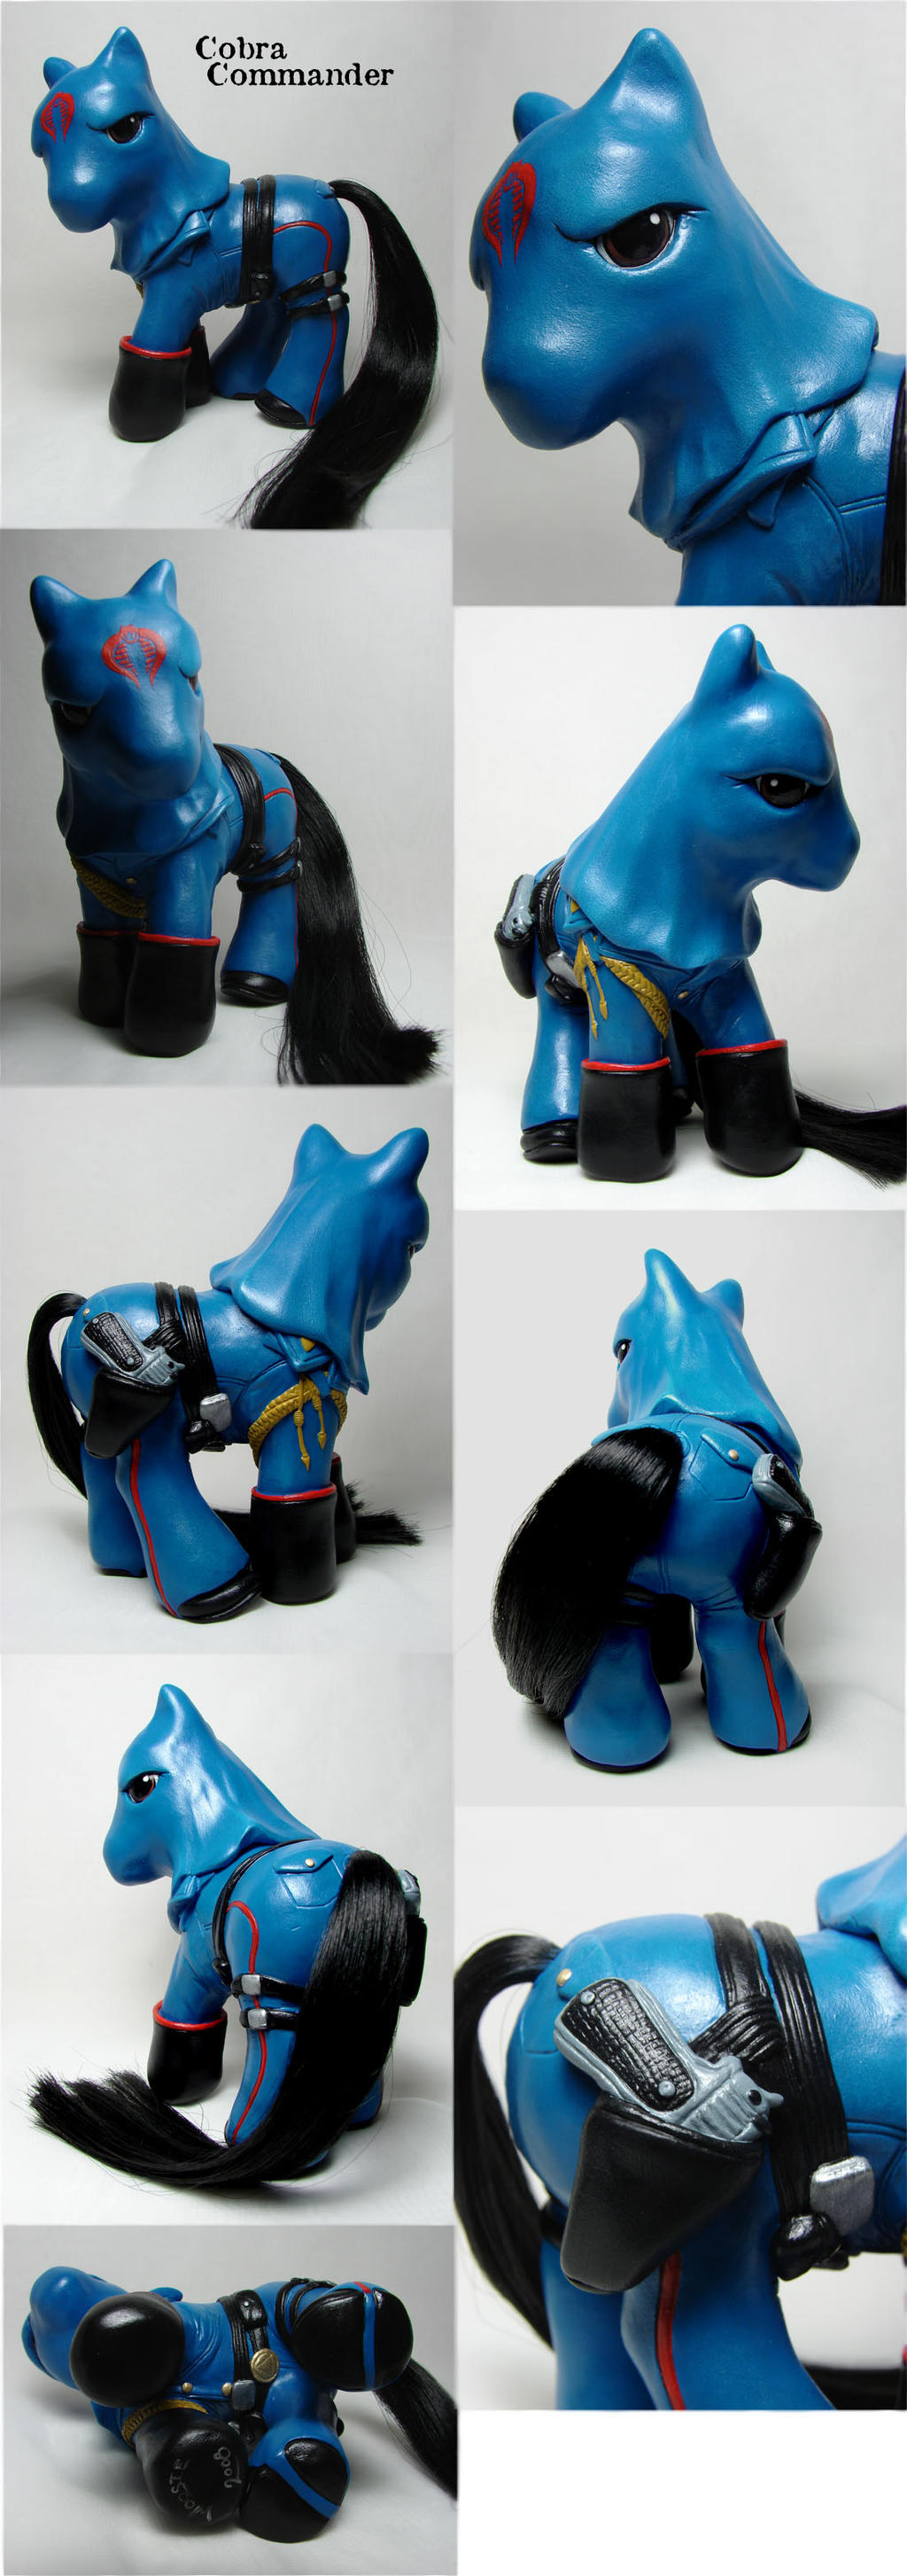 Cobra Commander little pony by Woosie